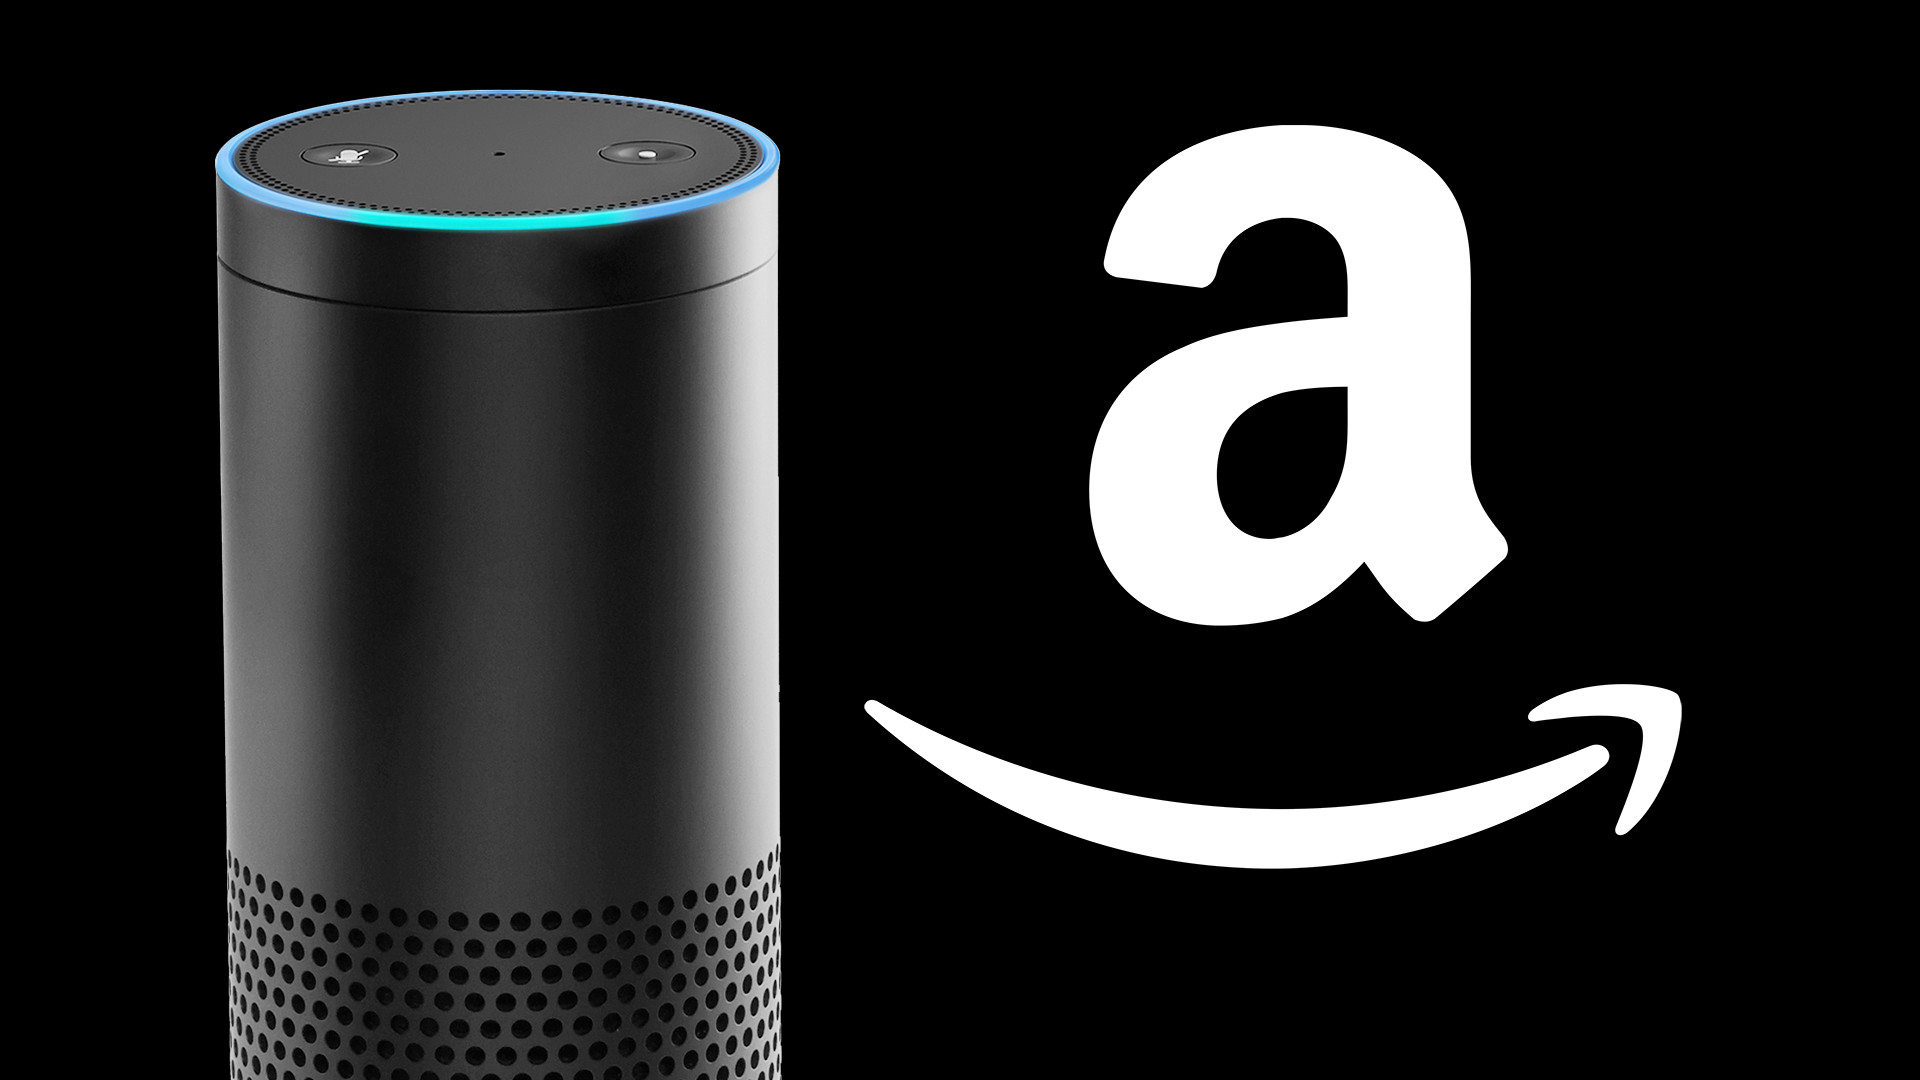 Bangor Buzz has Amazon Alexa